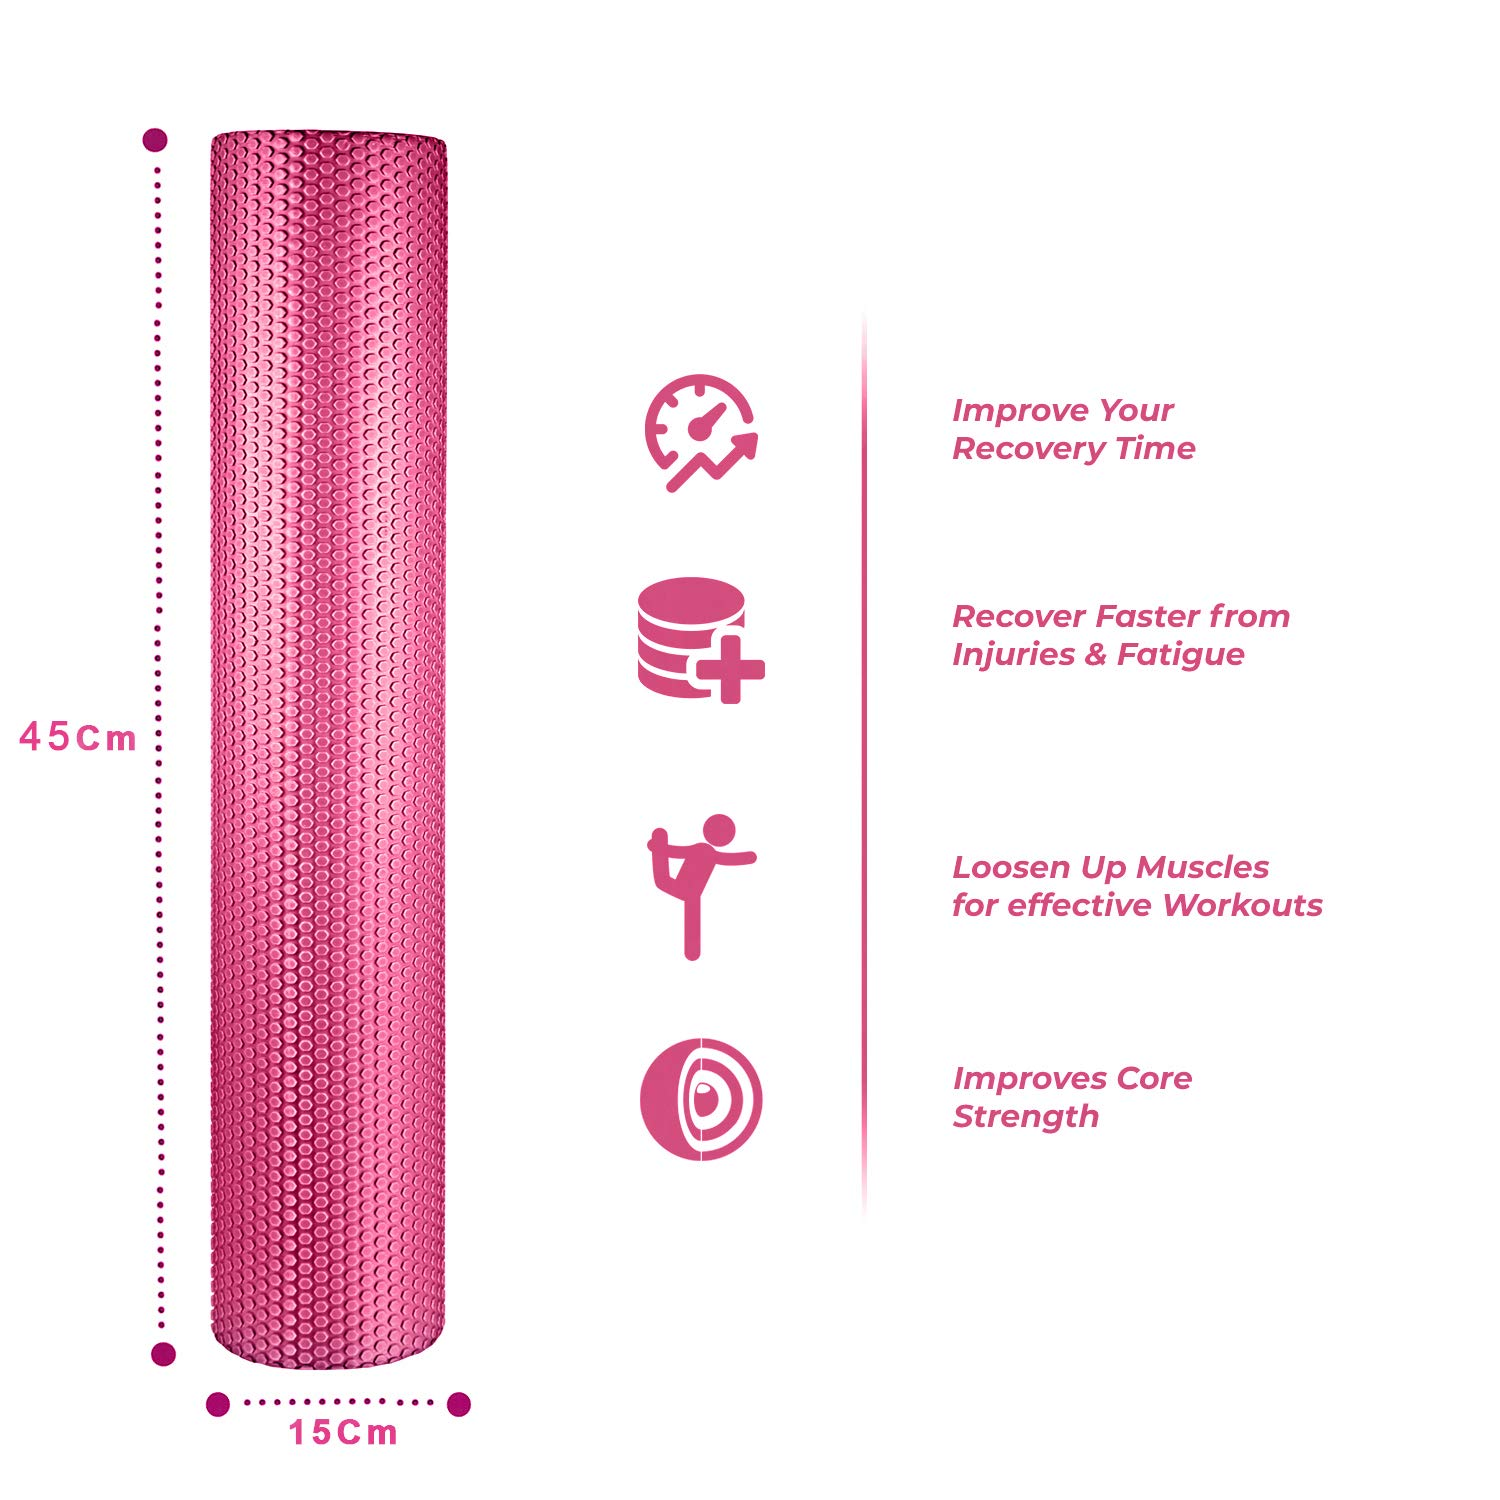 spinway Yoga Foam Roller Speckled Foam Rollers for Muscles Extra Firm High Density for Physical Therapy Exercise Deep Tissue Muscle Massage (Pink)